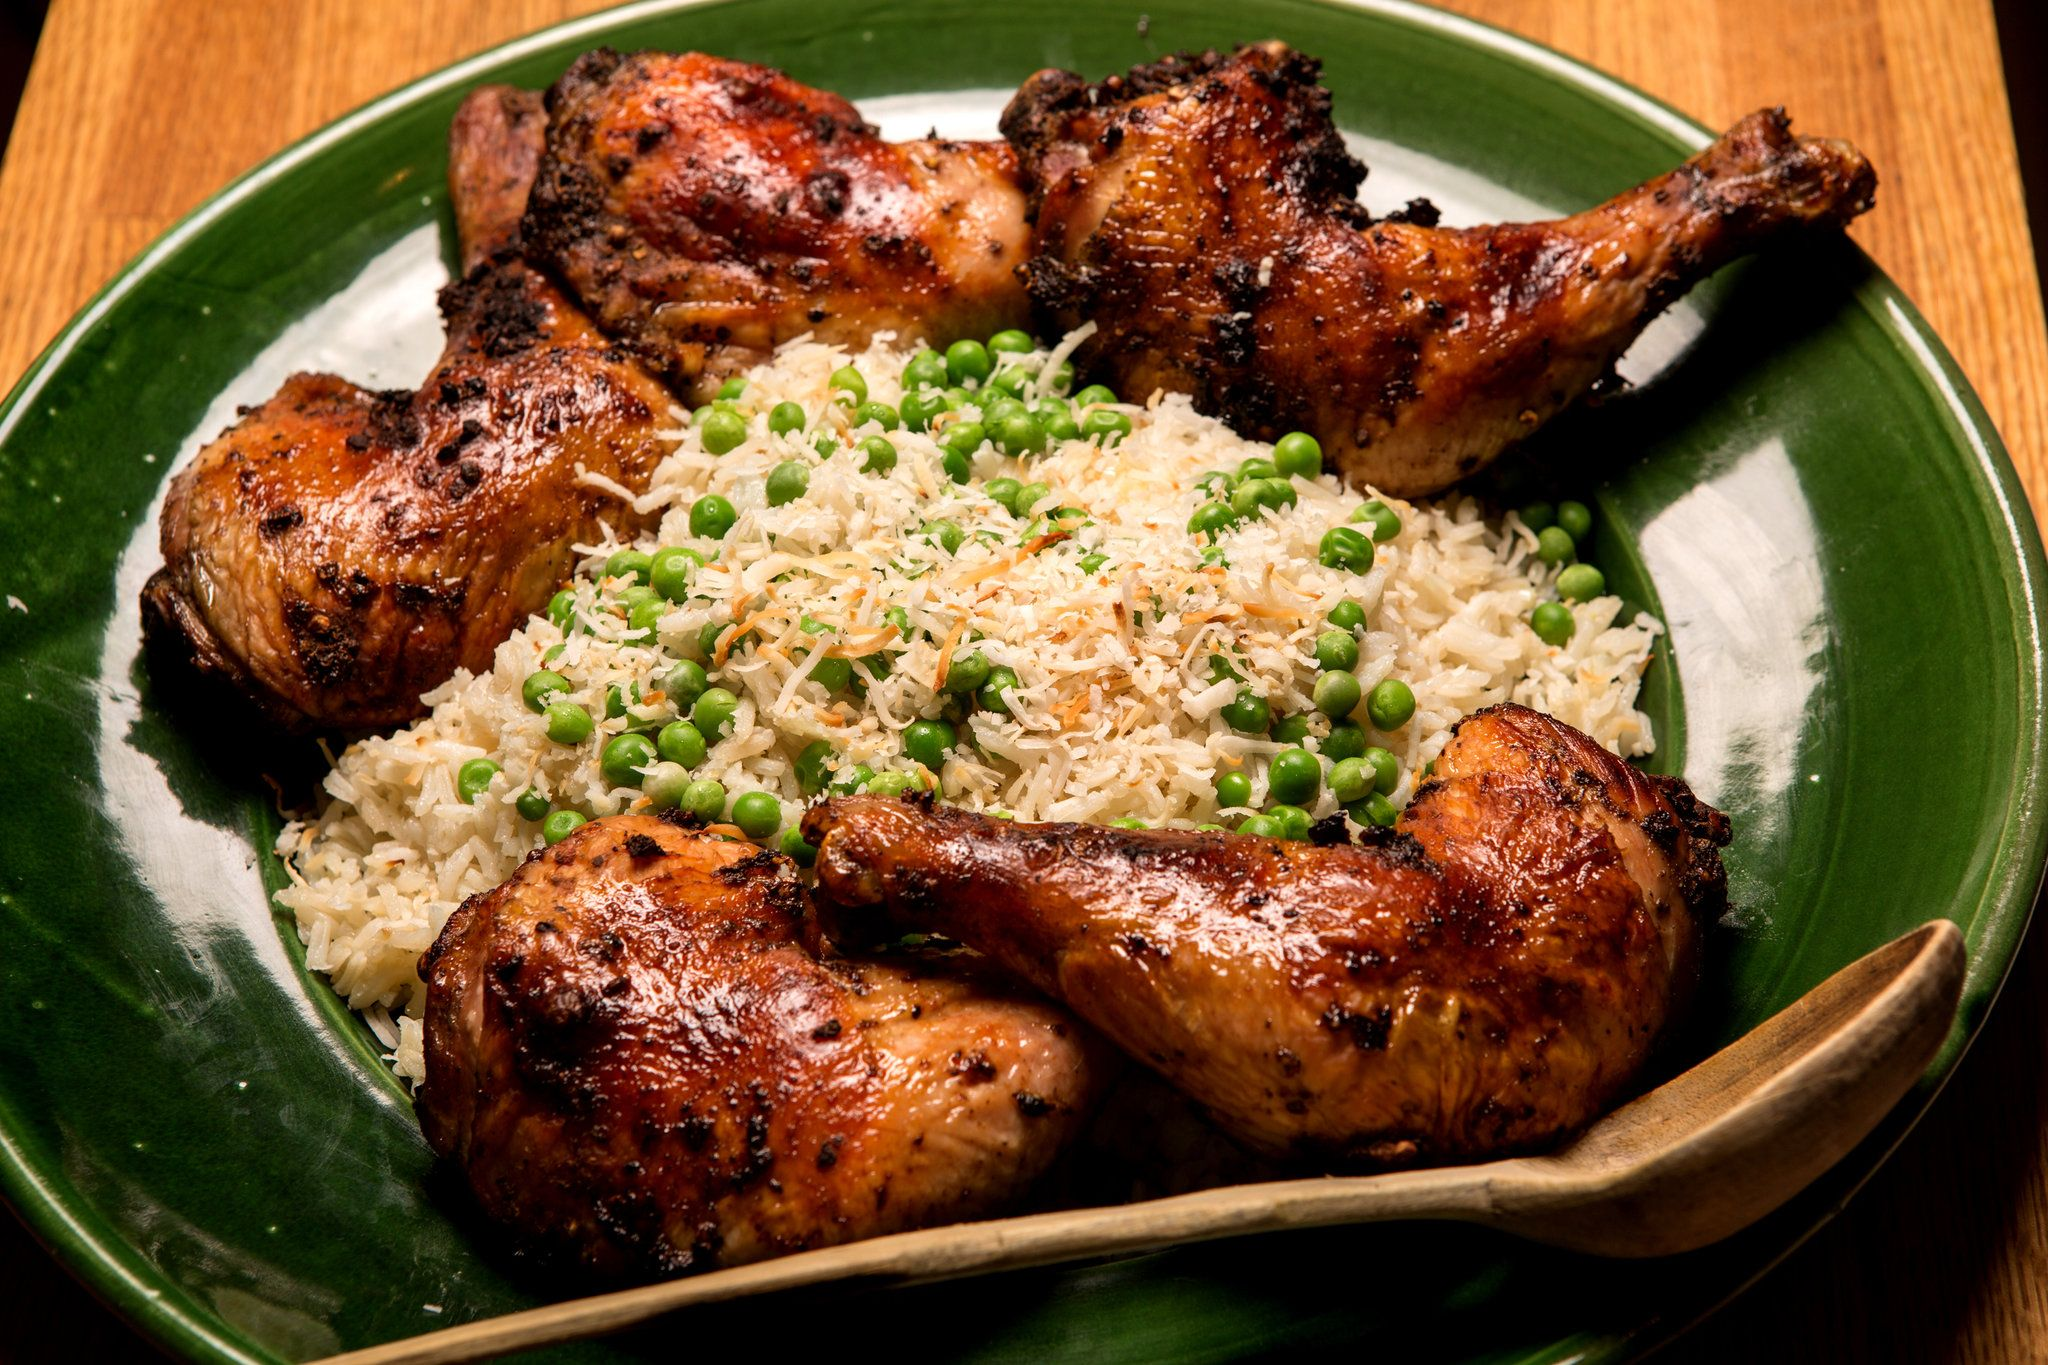 Coconut rice with peas recipe chicken duck turkey coconut rice with peas recipe chicken duck turkey pinterest coconut rice rice and coconut ccuart Image collections